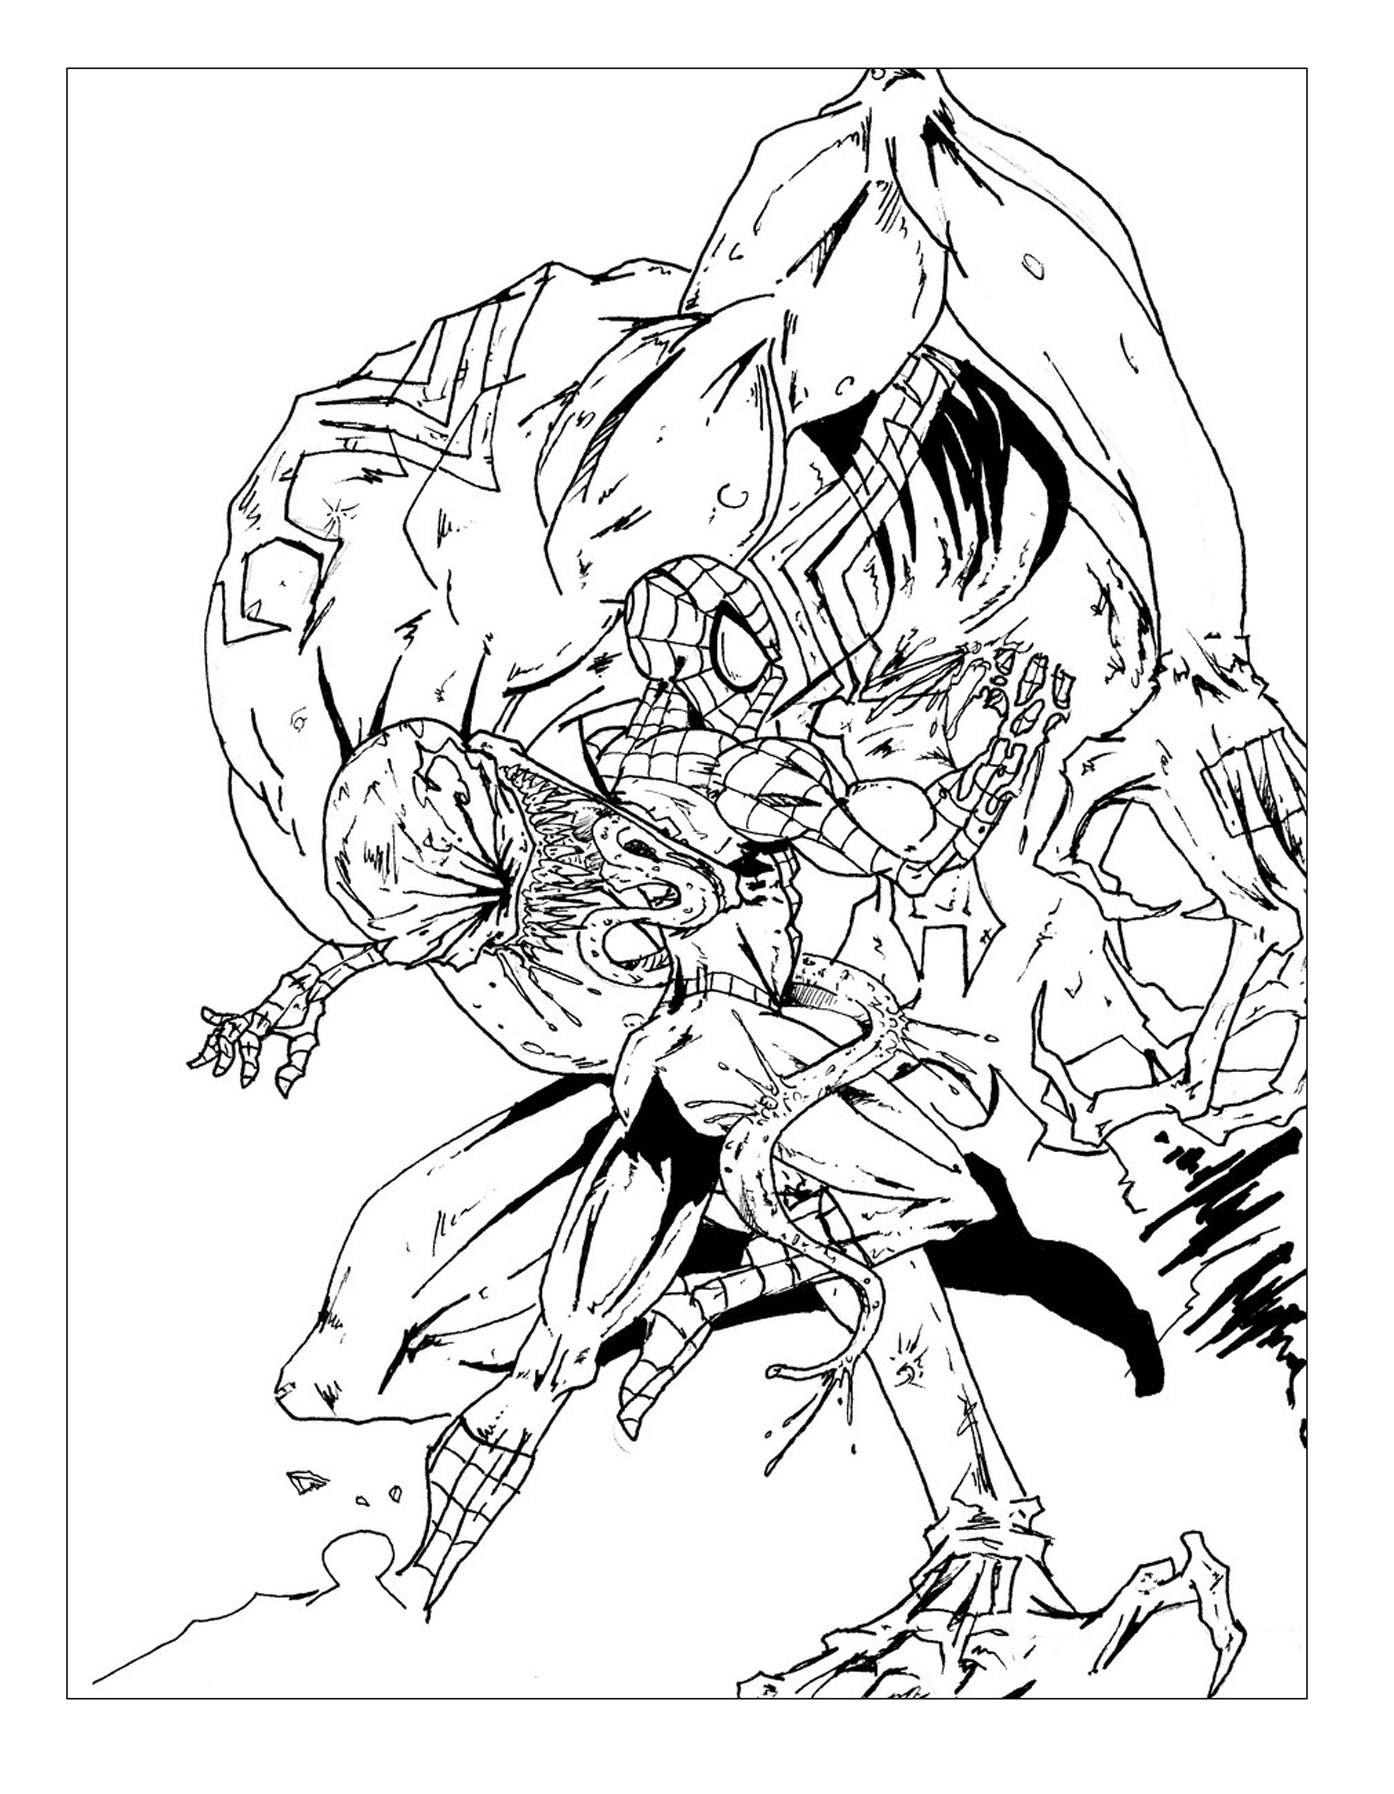 Spiderman battle comic - Books Adult Coloring Pages